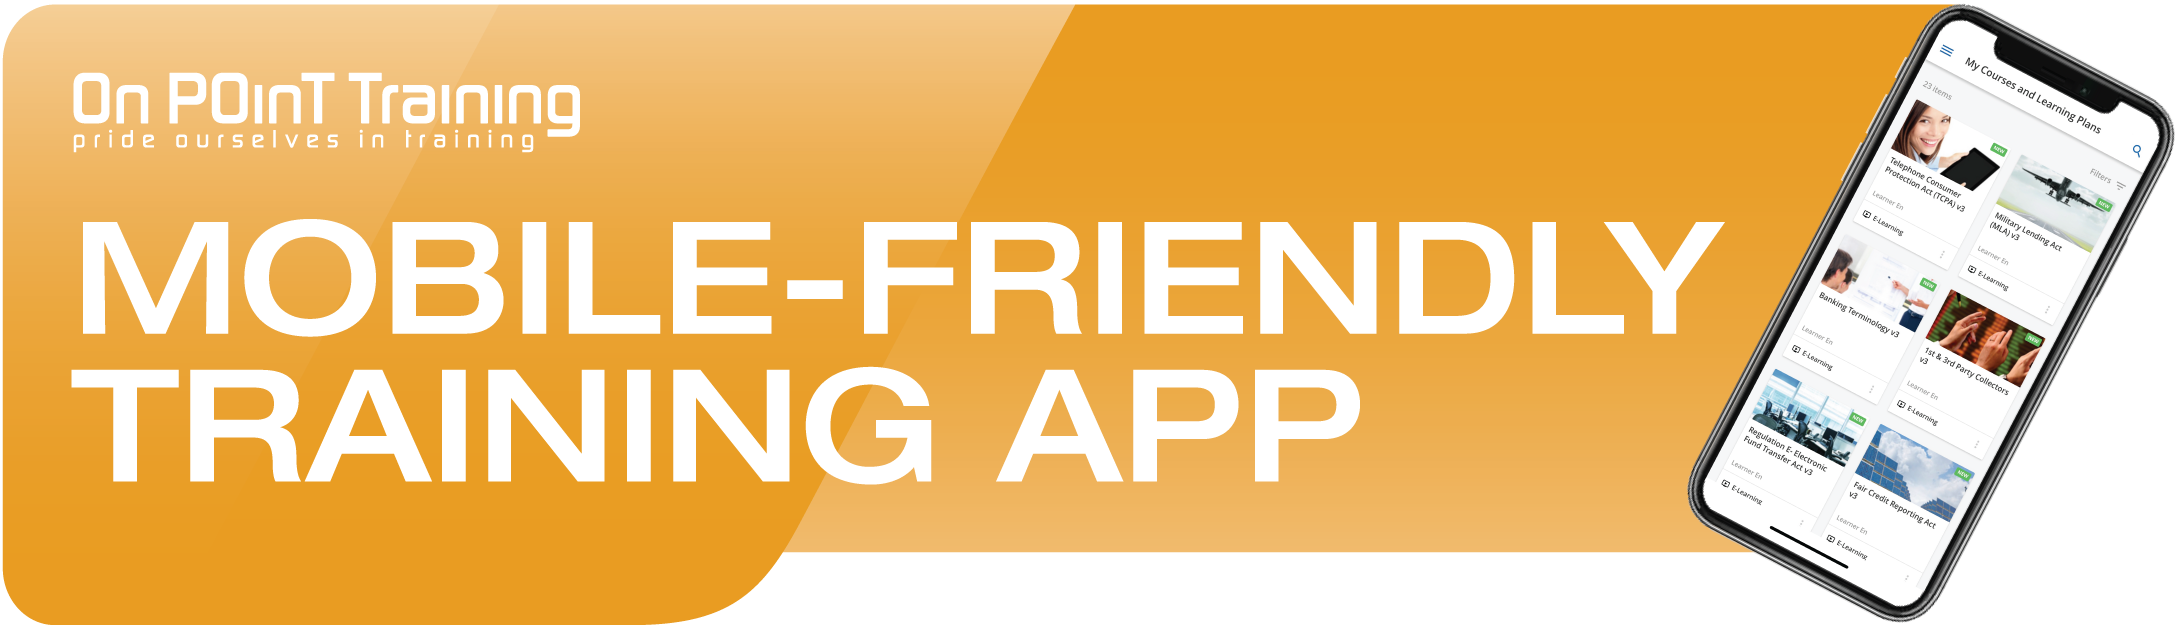 On POinT Training Center Now Mobile-Friendly through the Go.Learn App